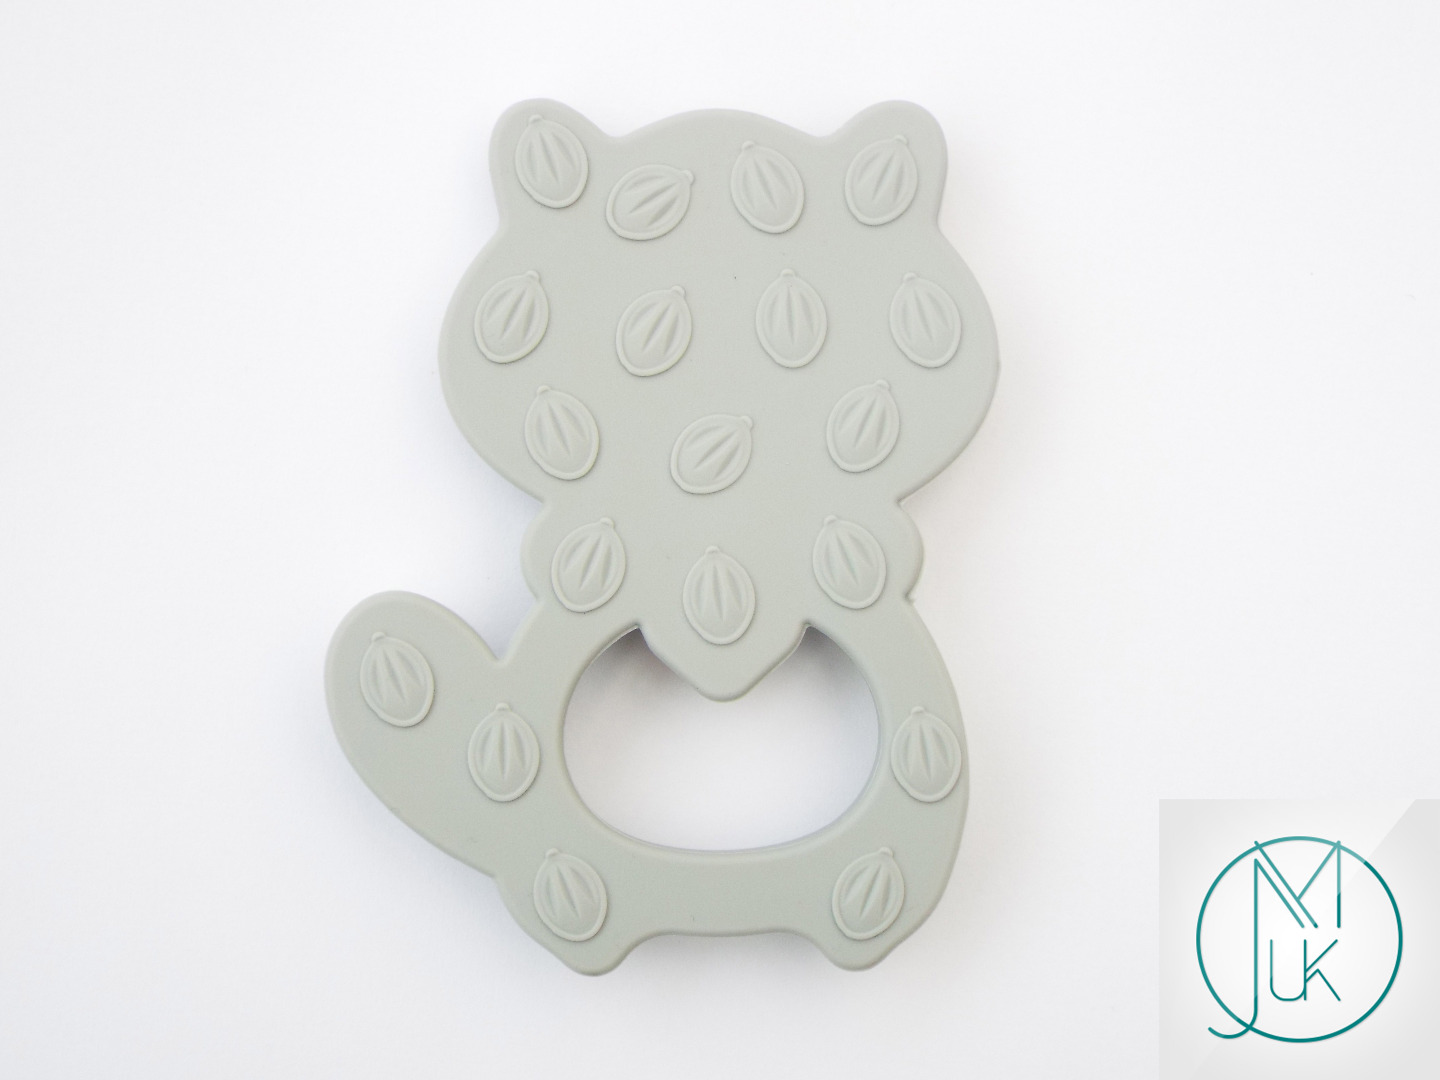 Silicone-Racoon-Teether-for-Teething-Jewellery-Making-7-Colors-to-Choose thumbnail 10